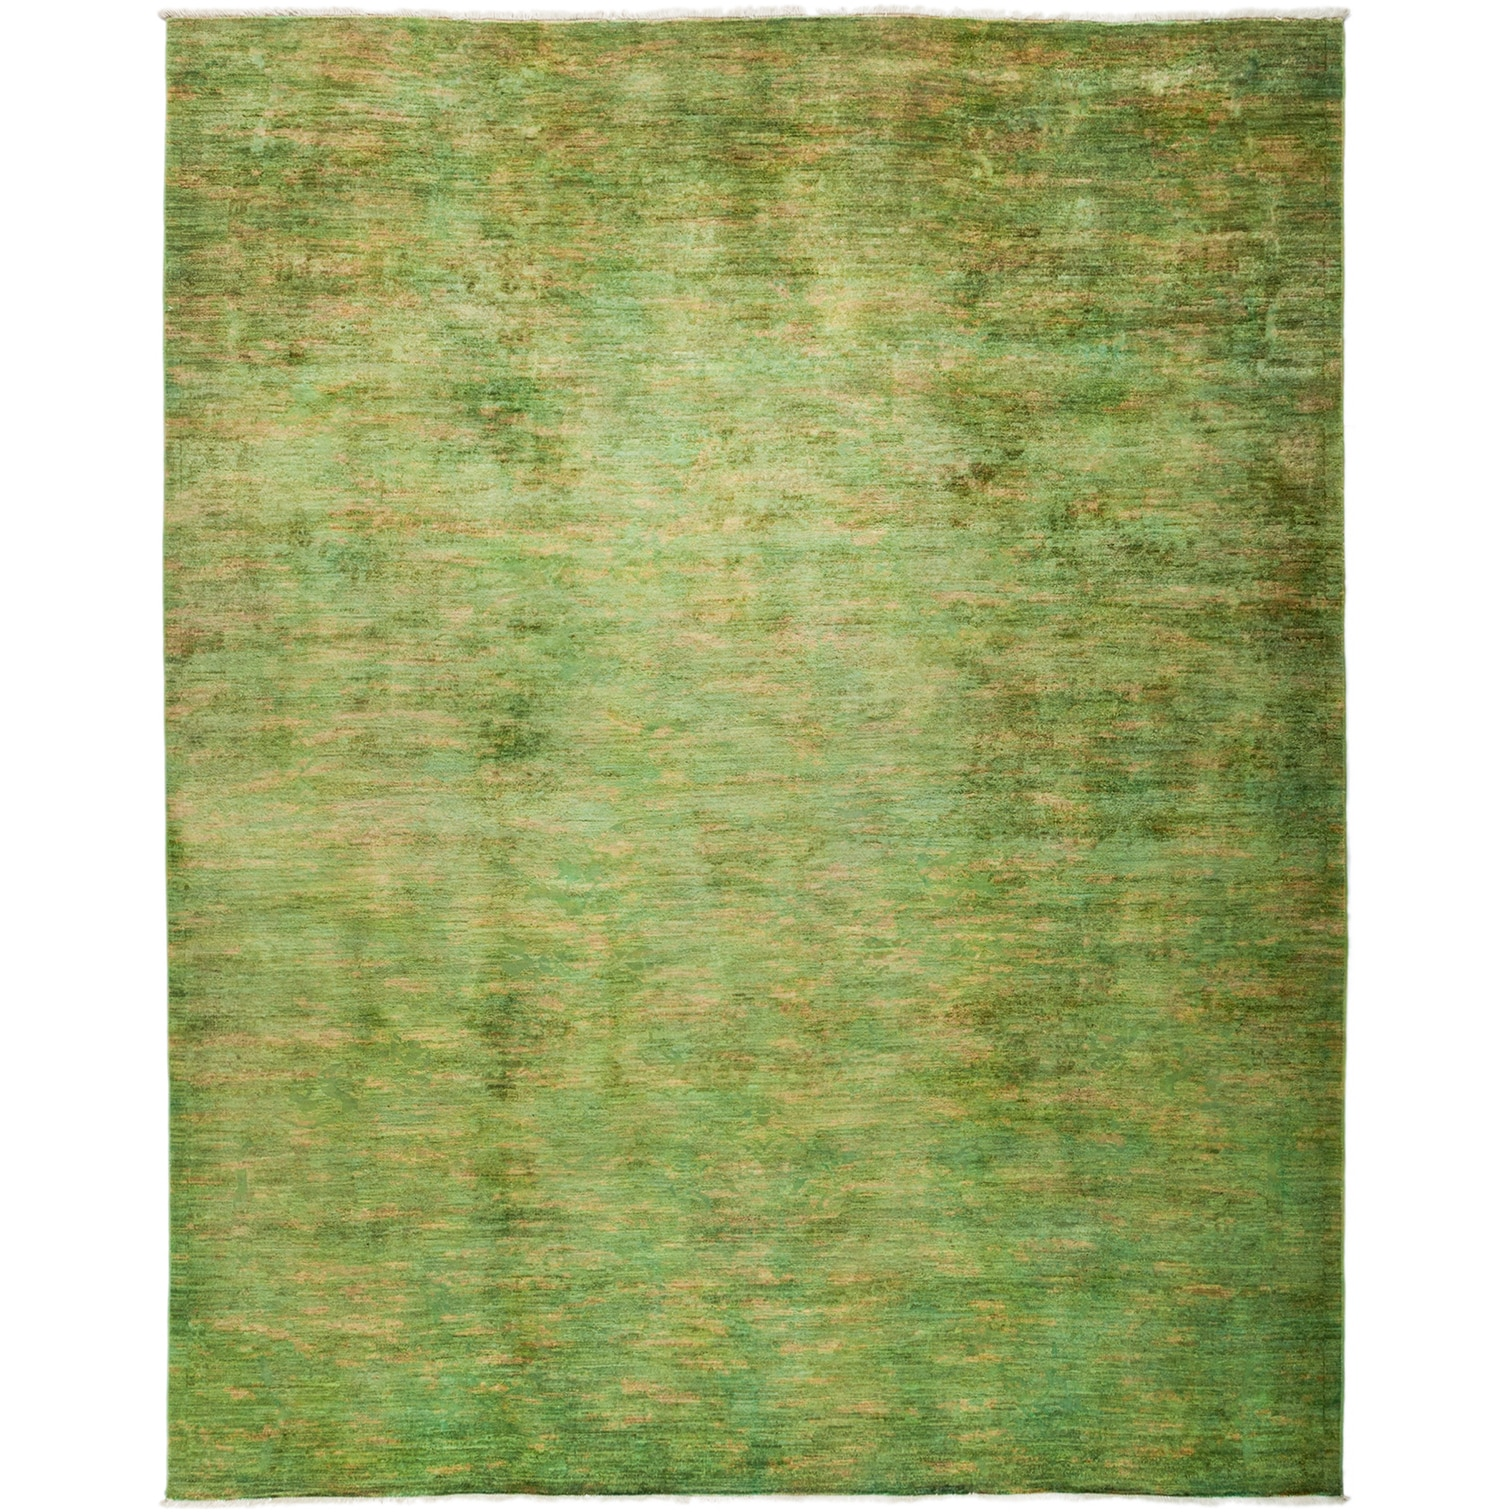 Qamsarveh Overdyed Green Wool Hand-knotted Oriental Area Rug (8'2 x 10'1)